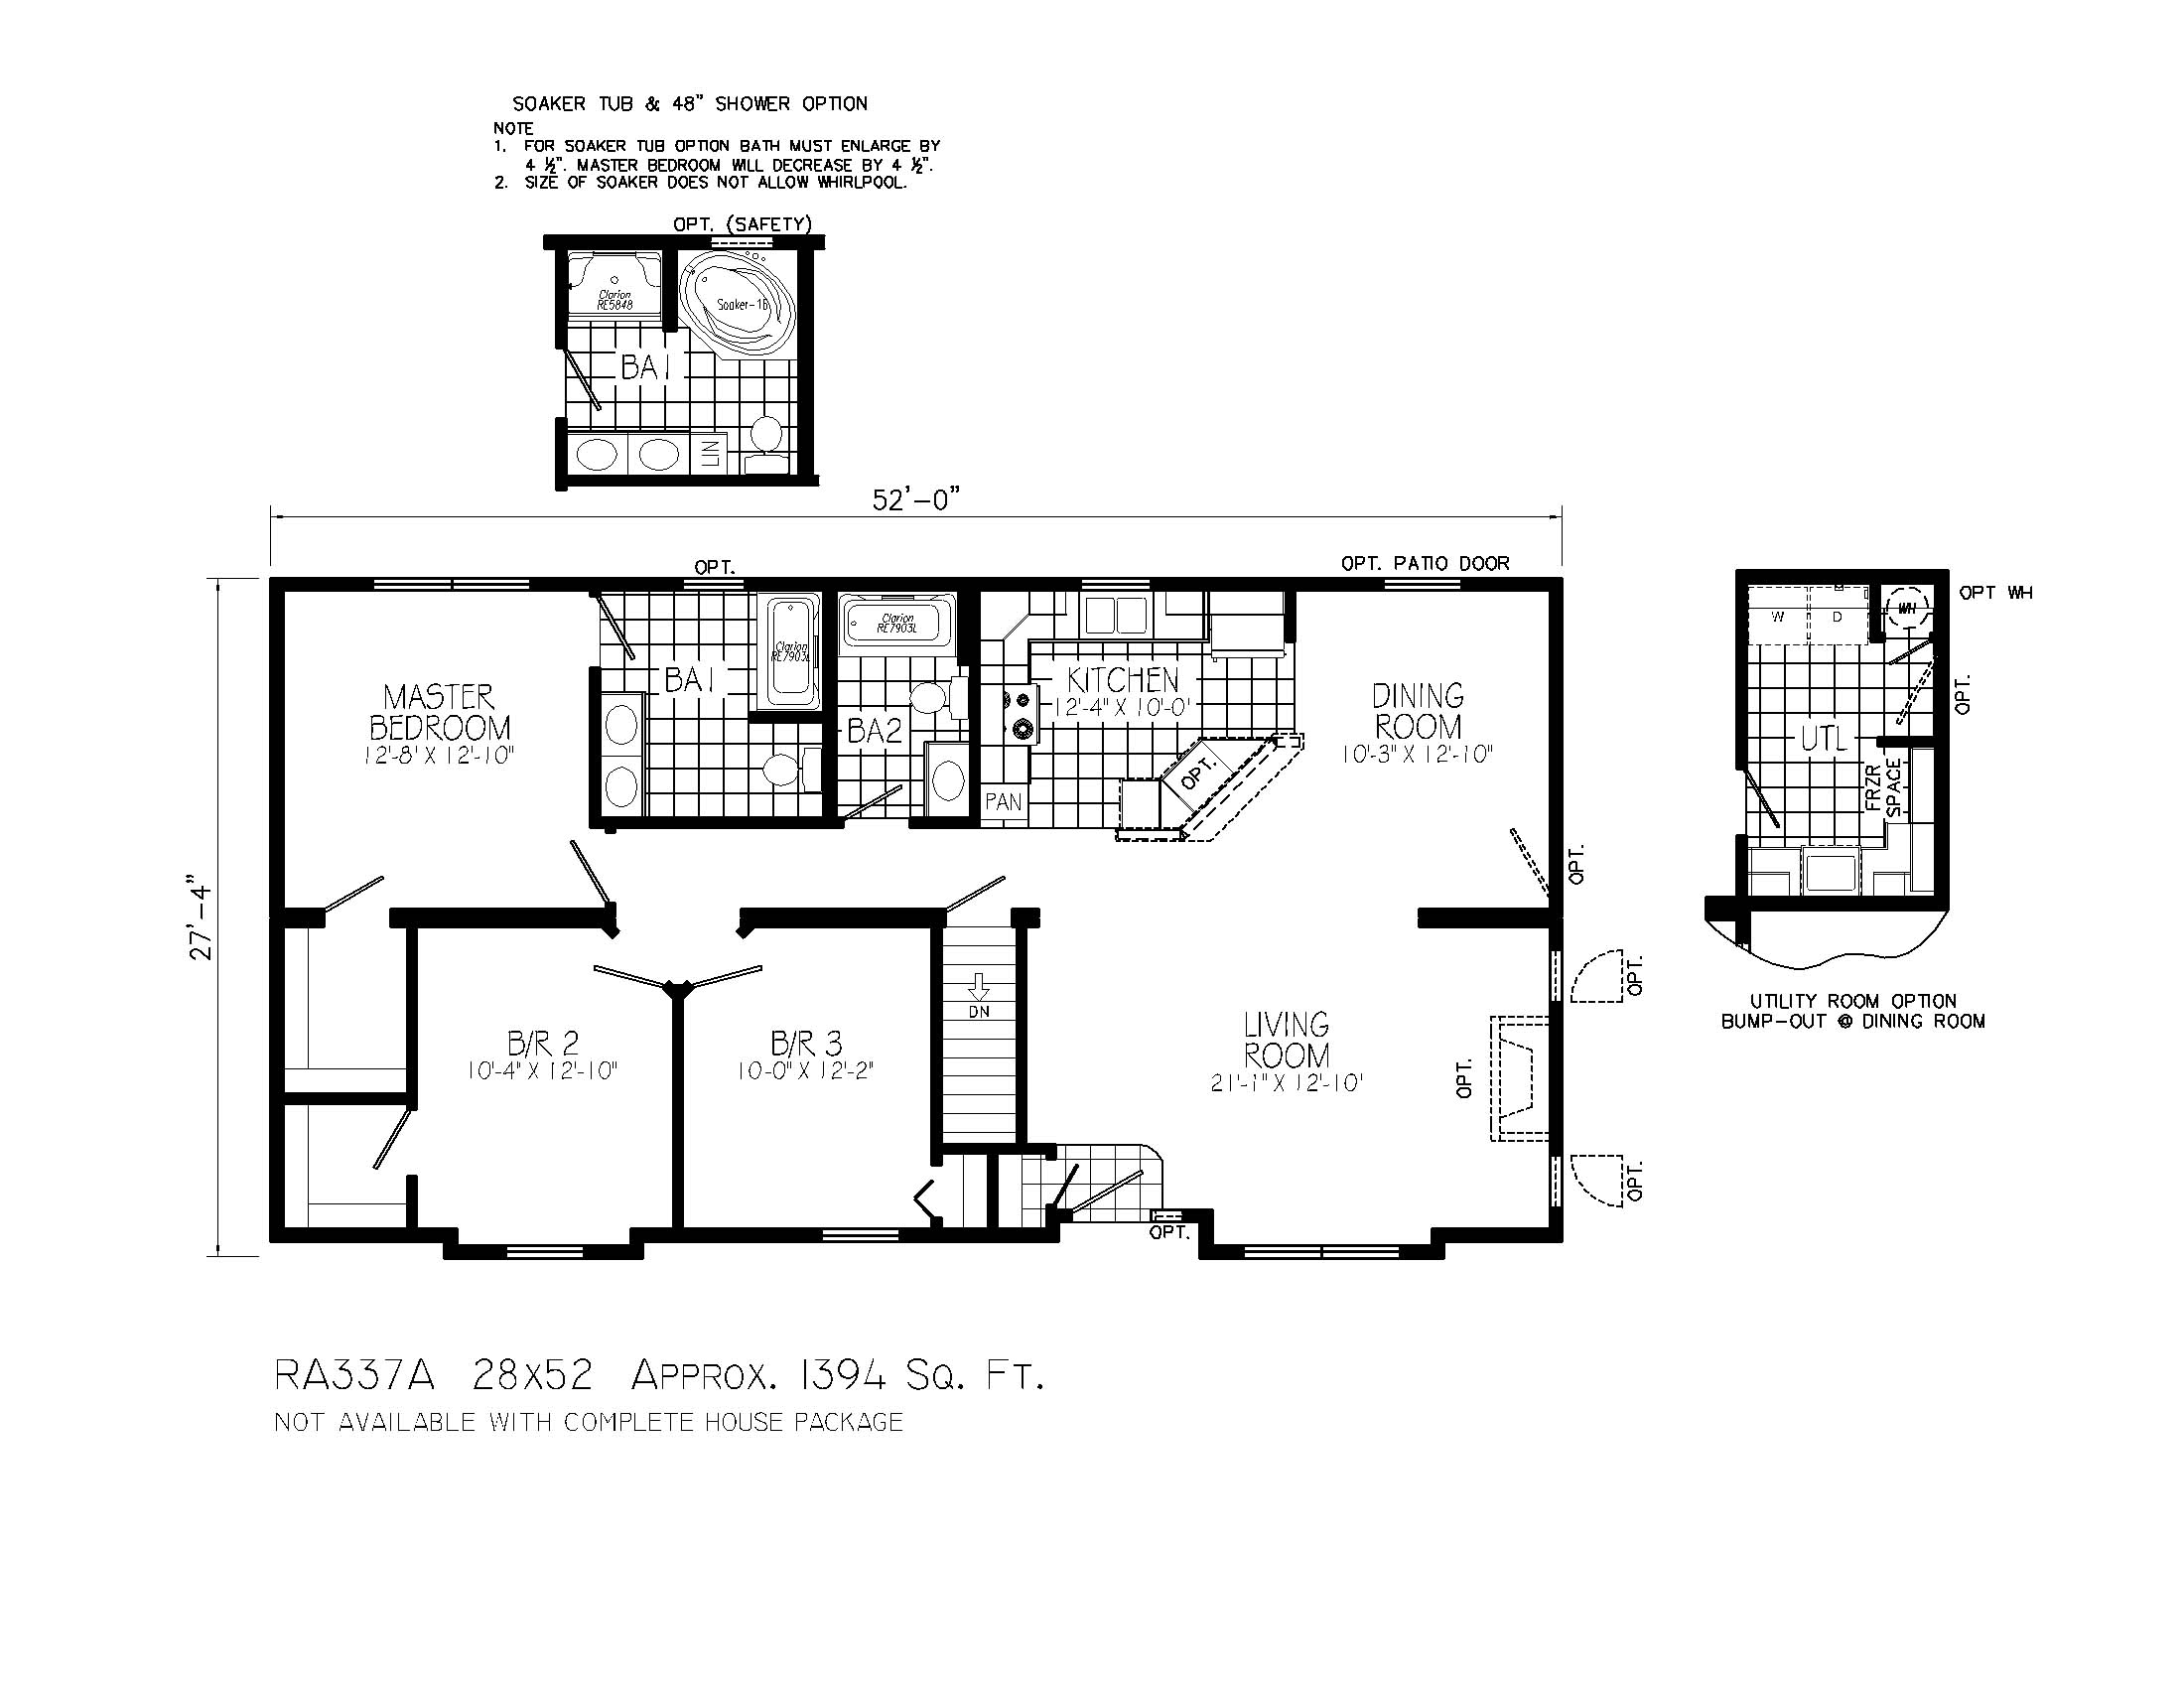 Simple ranch floor plans ranch home floor plans ranch for Ranch home plans with loft